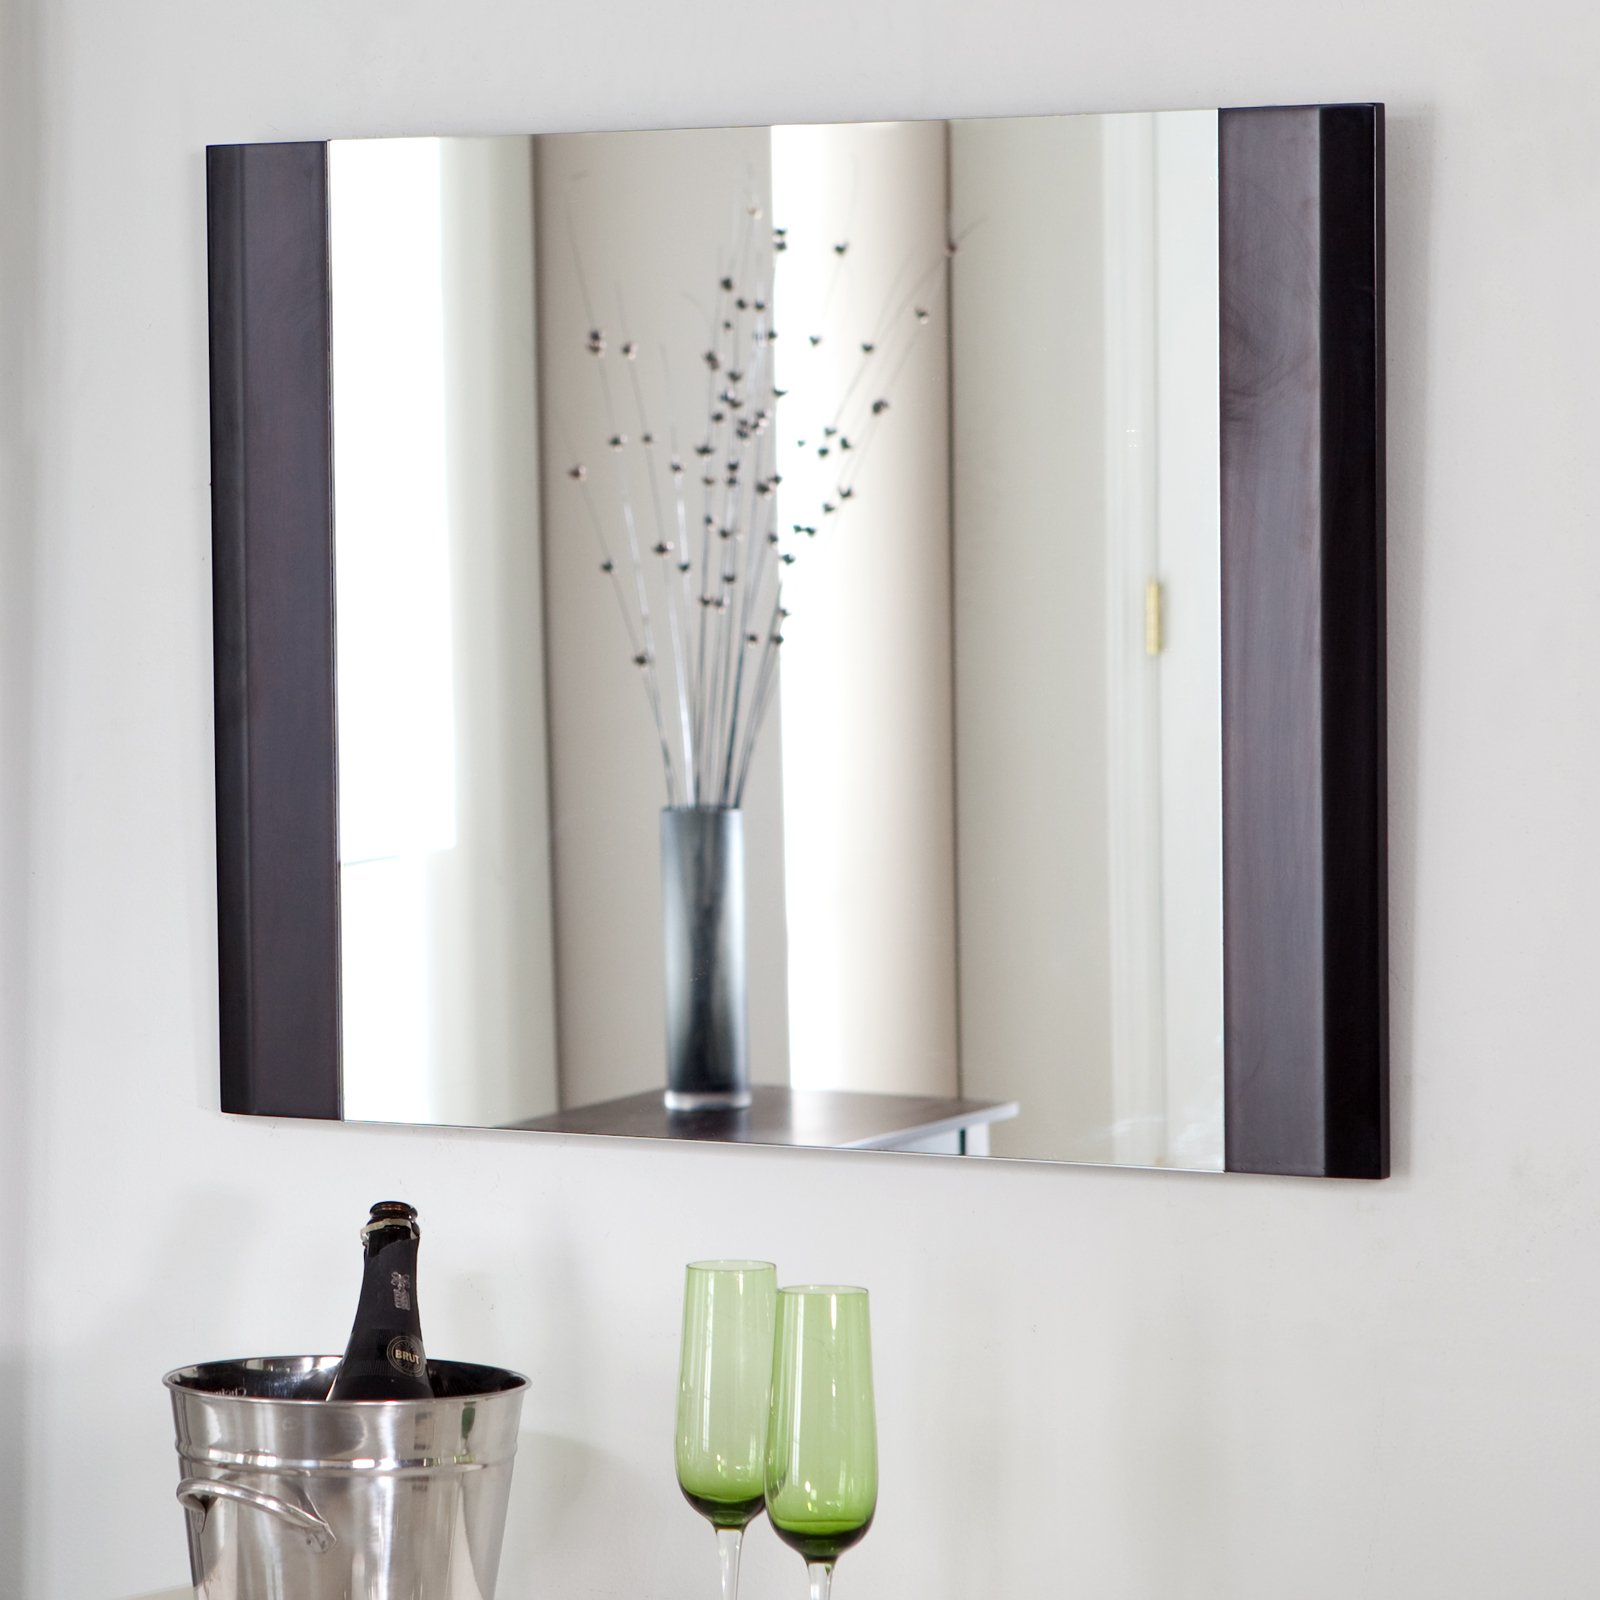 Décor Wonderland Frameless Chase Wall Mirror - 31.5W x 23.5H in.